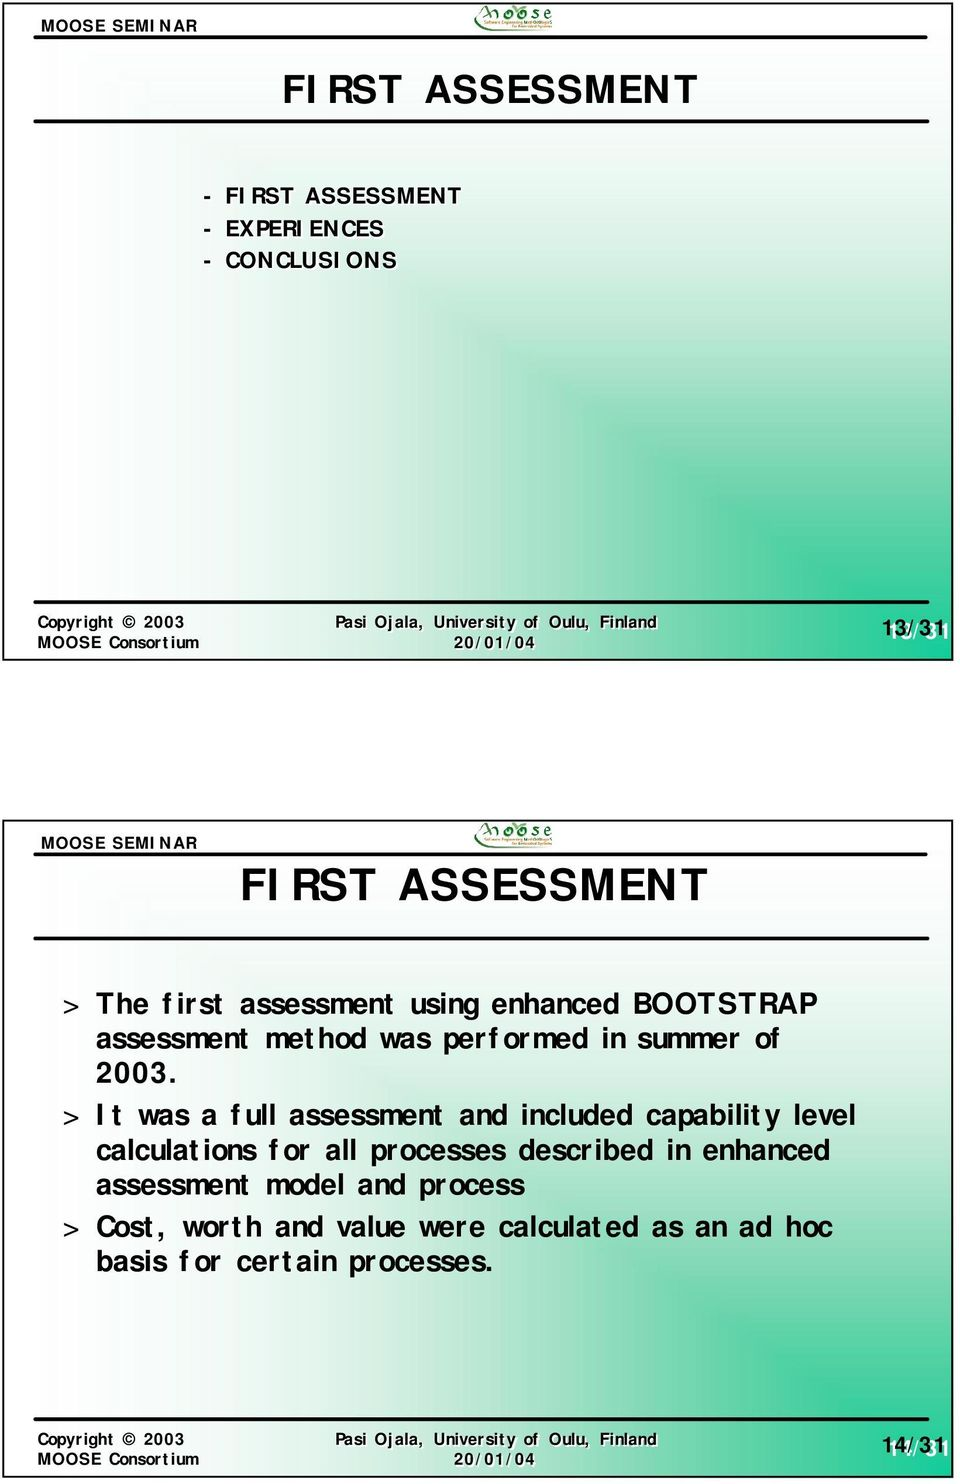 > It was a full assessment and included capability level calculations for all processes described in